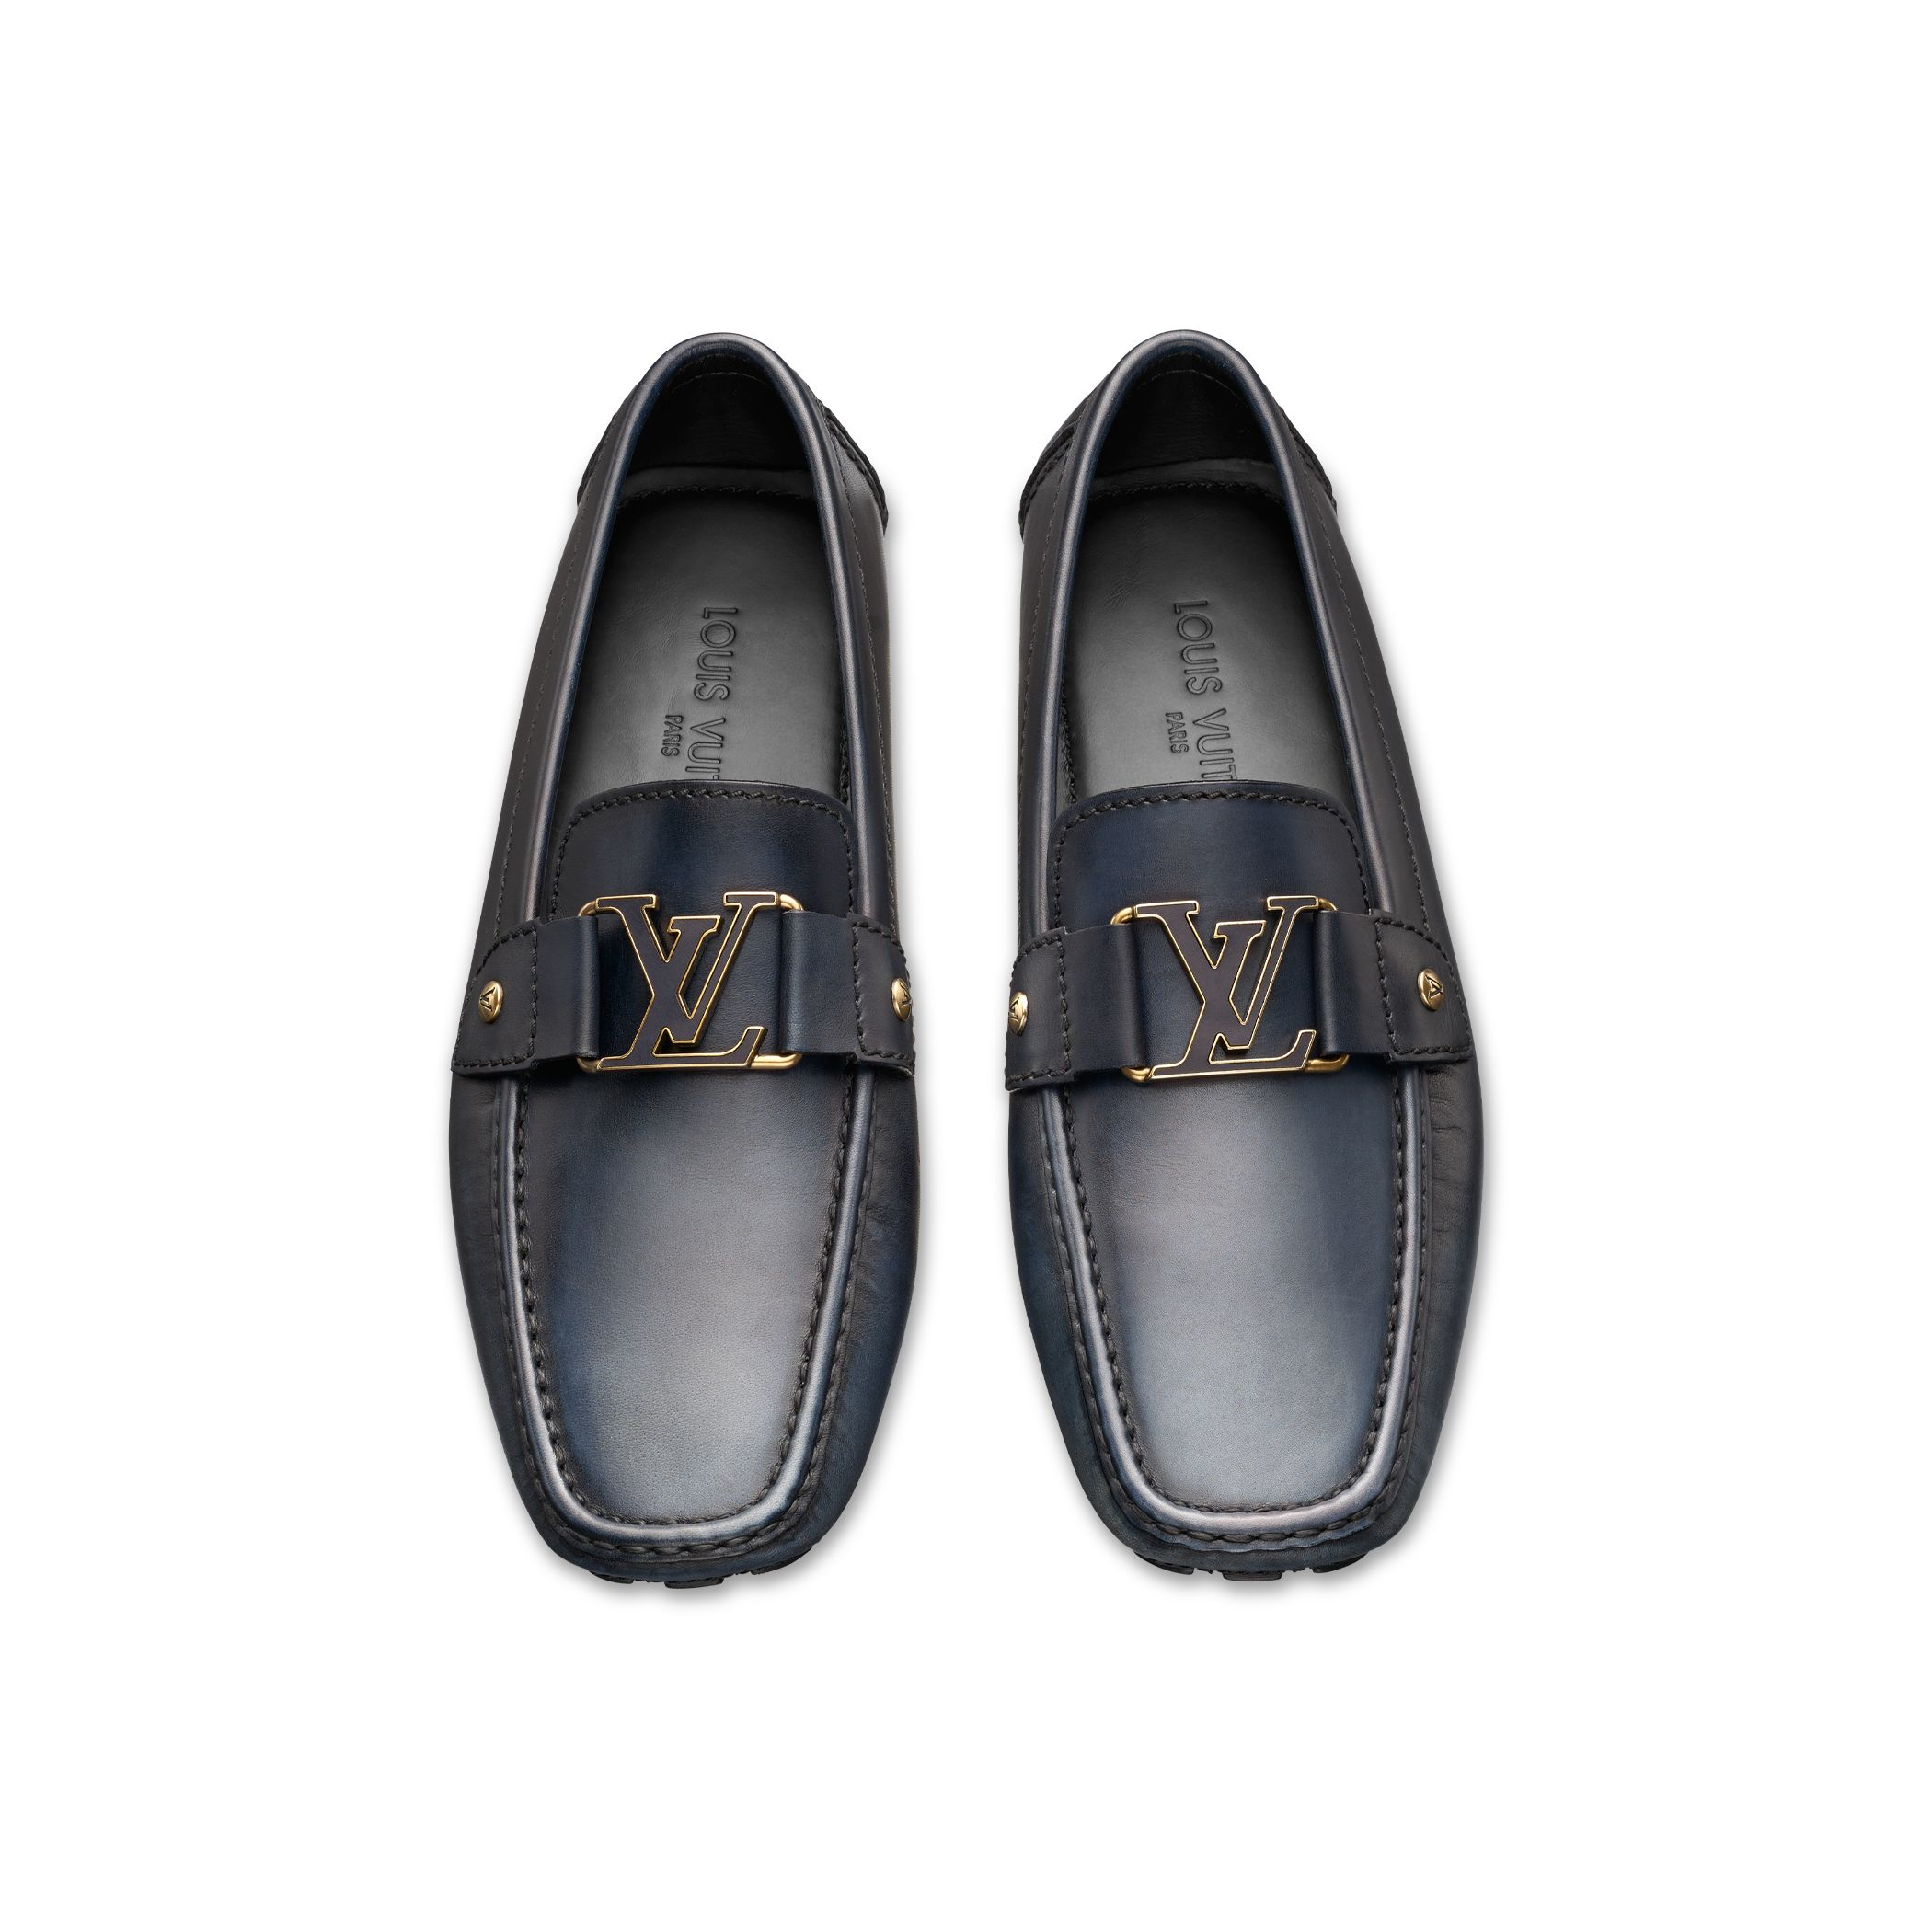 Louis Vuitton Womens Loafer Shoes